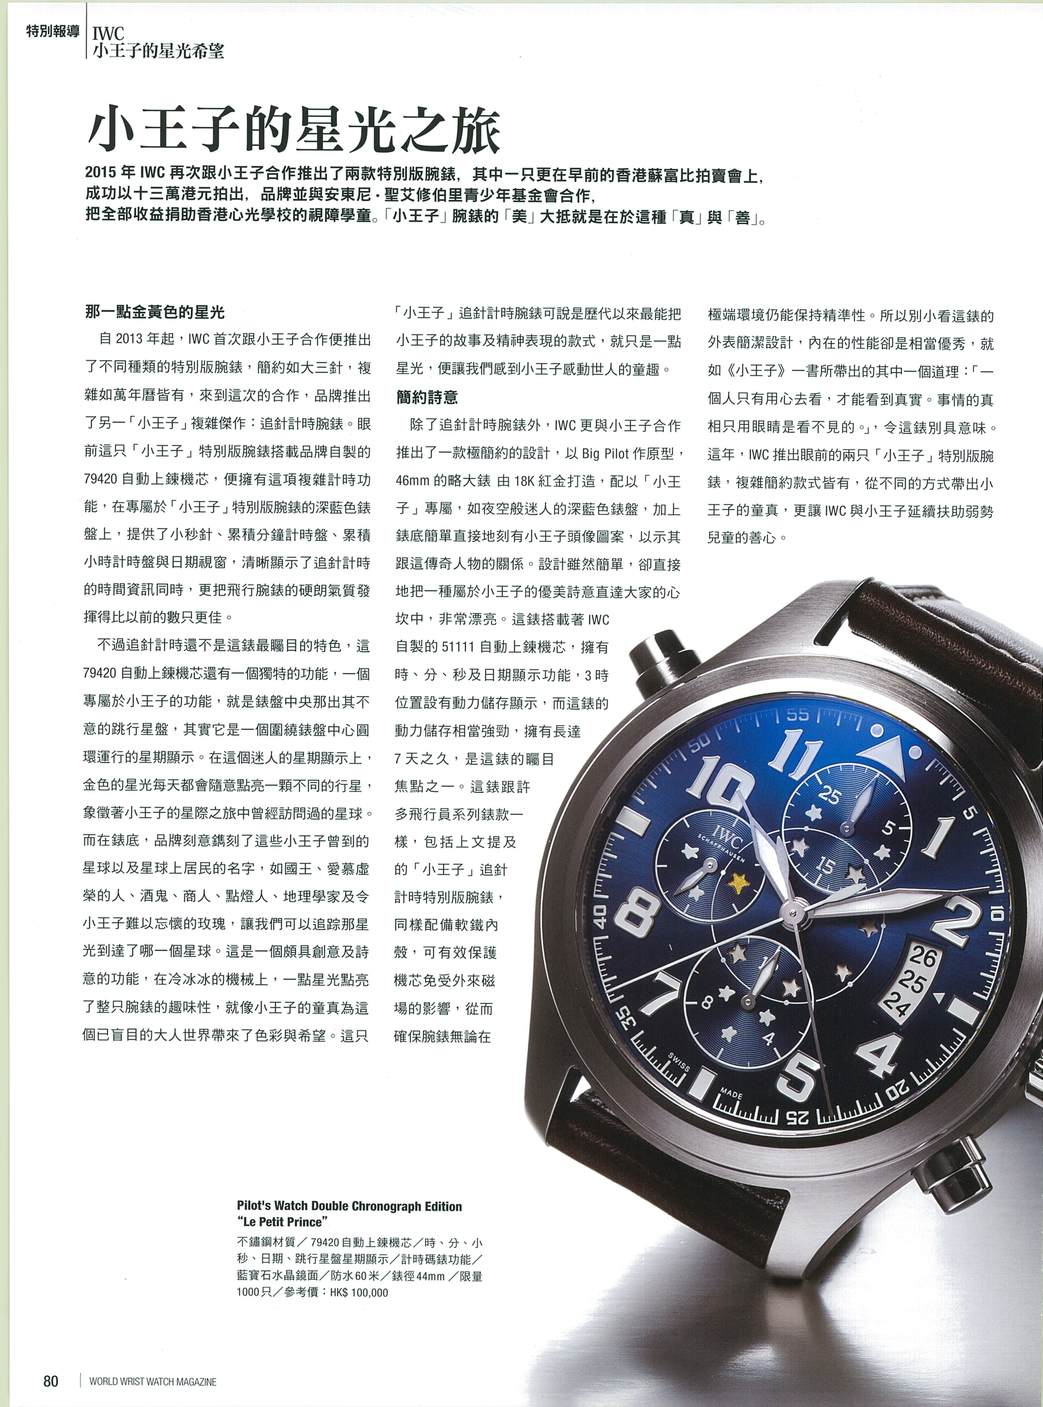 20160101_World Wrist Watch Magazine_P074-081_7_201601019987929.JPG